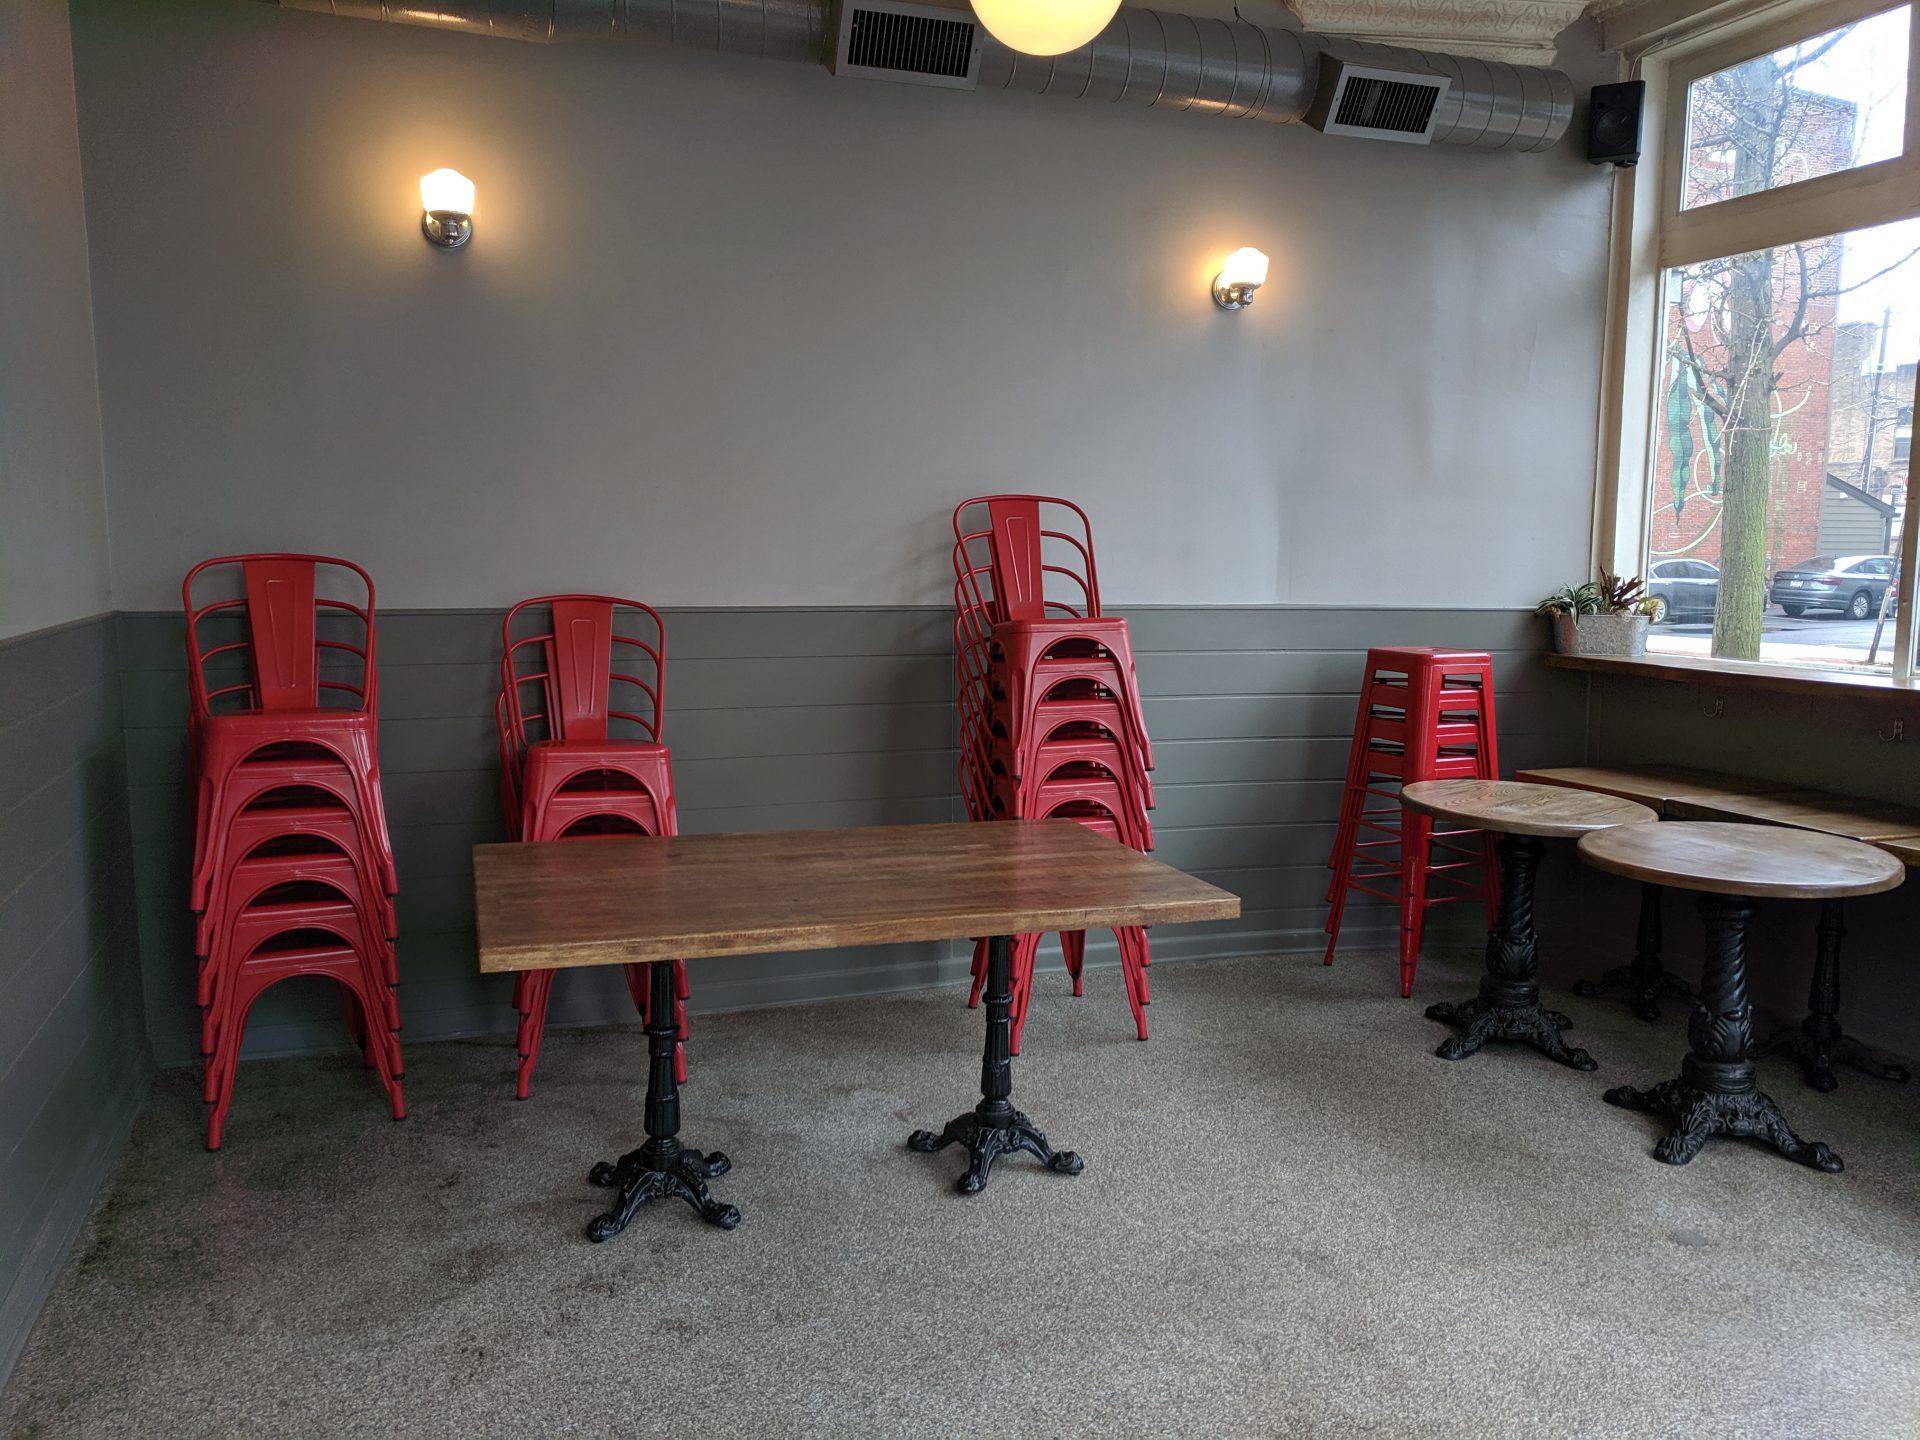 Tables and chairs in Knead Slice Shop are pushed up against the walls on Thursday, March 19, 2020. Governor Tom Wolf has limited restaurants statewide to take-out service only to help slow the spread of COVID-19.